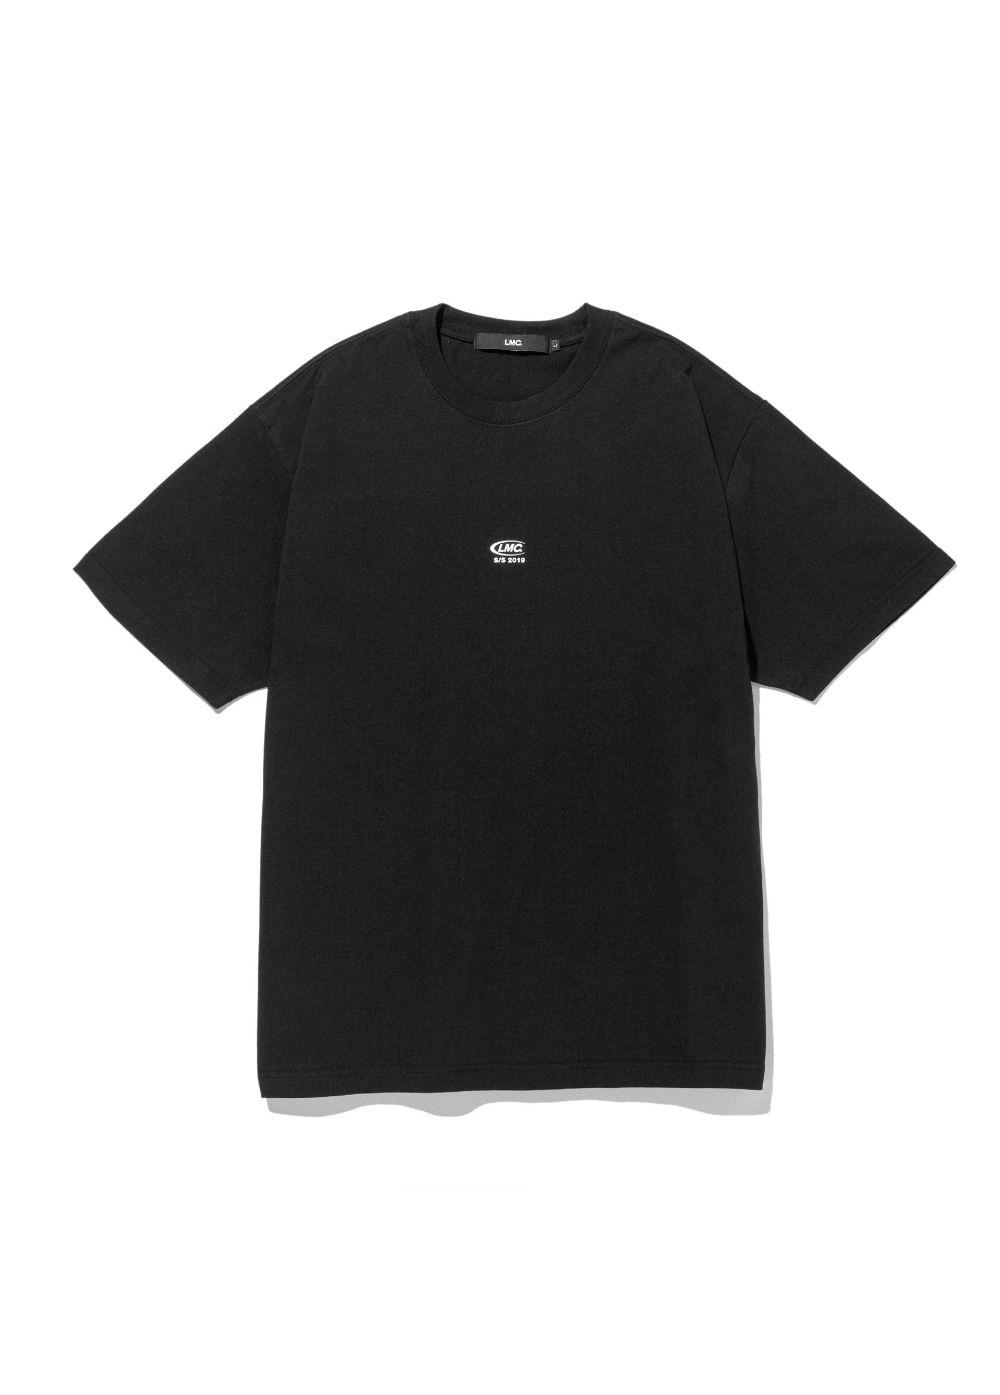 LMC MINI CO TEE black